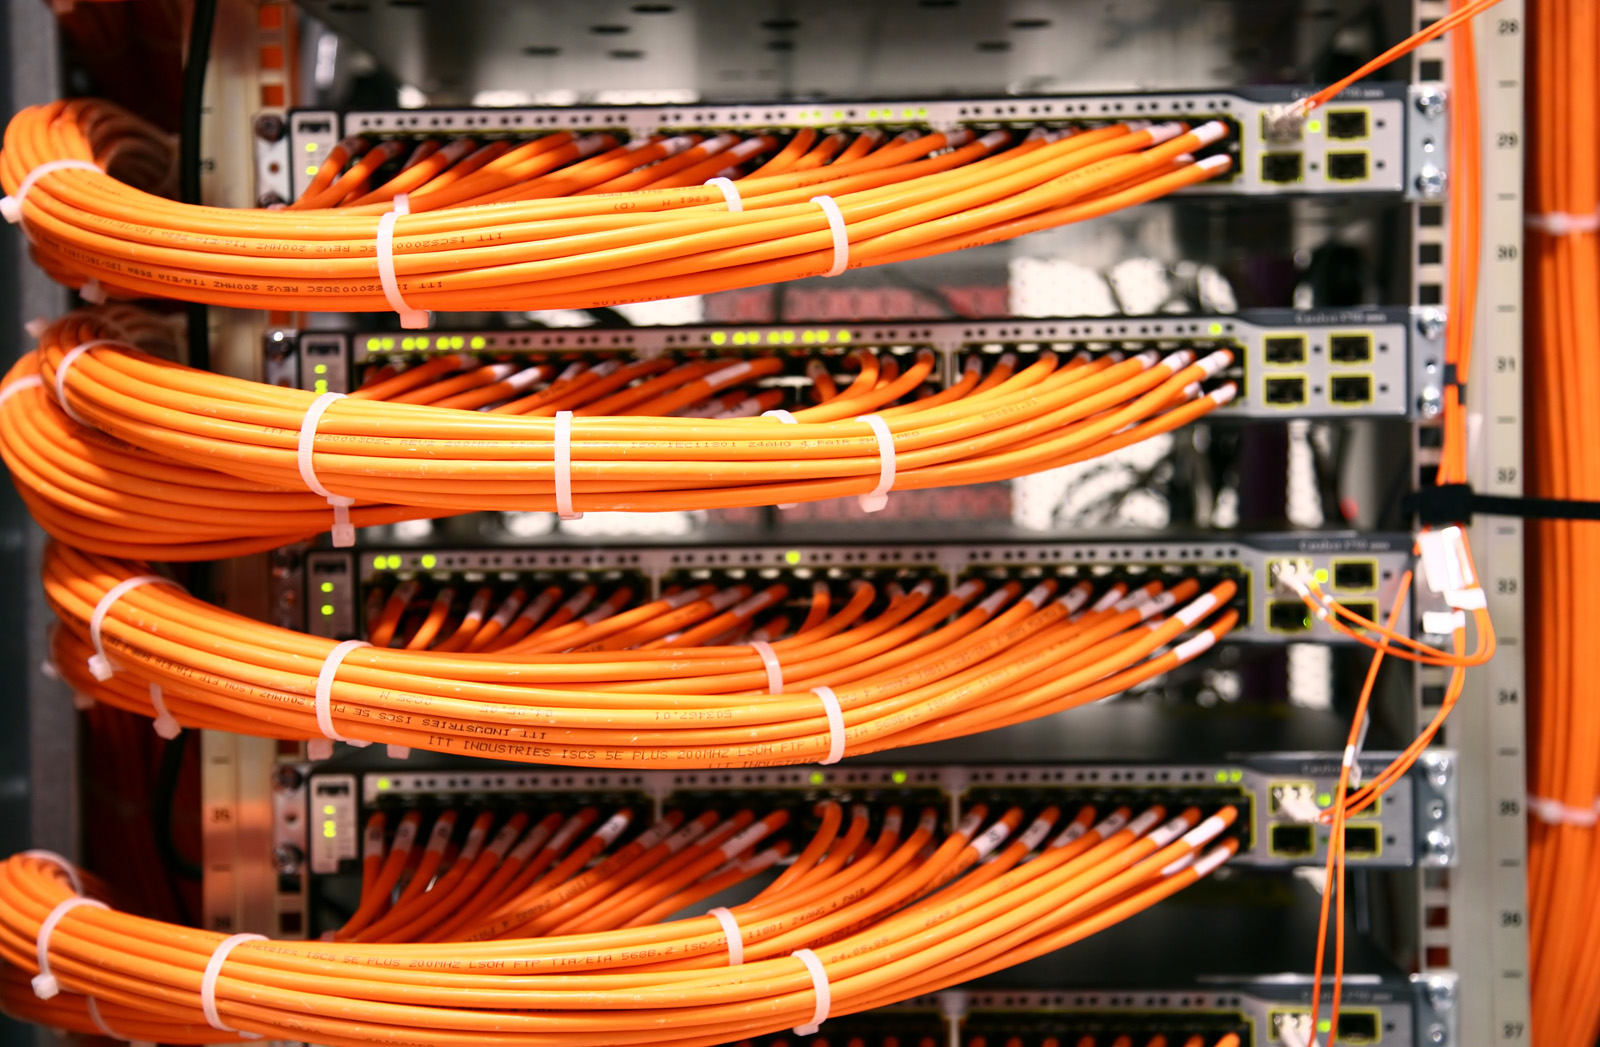 Guthrie KYs Trusted Voice & Data Network Cabling Contractor